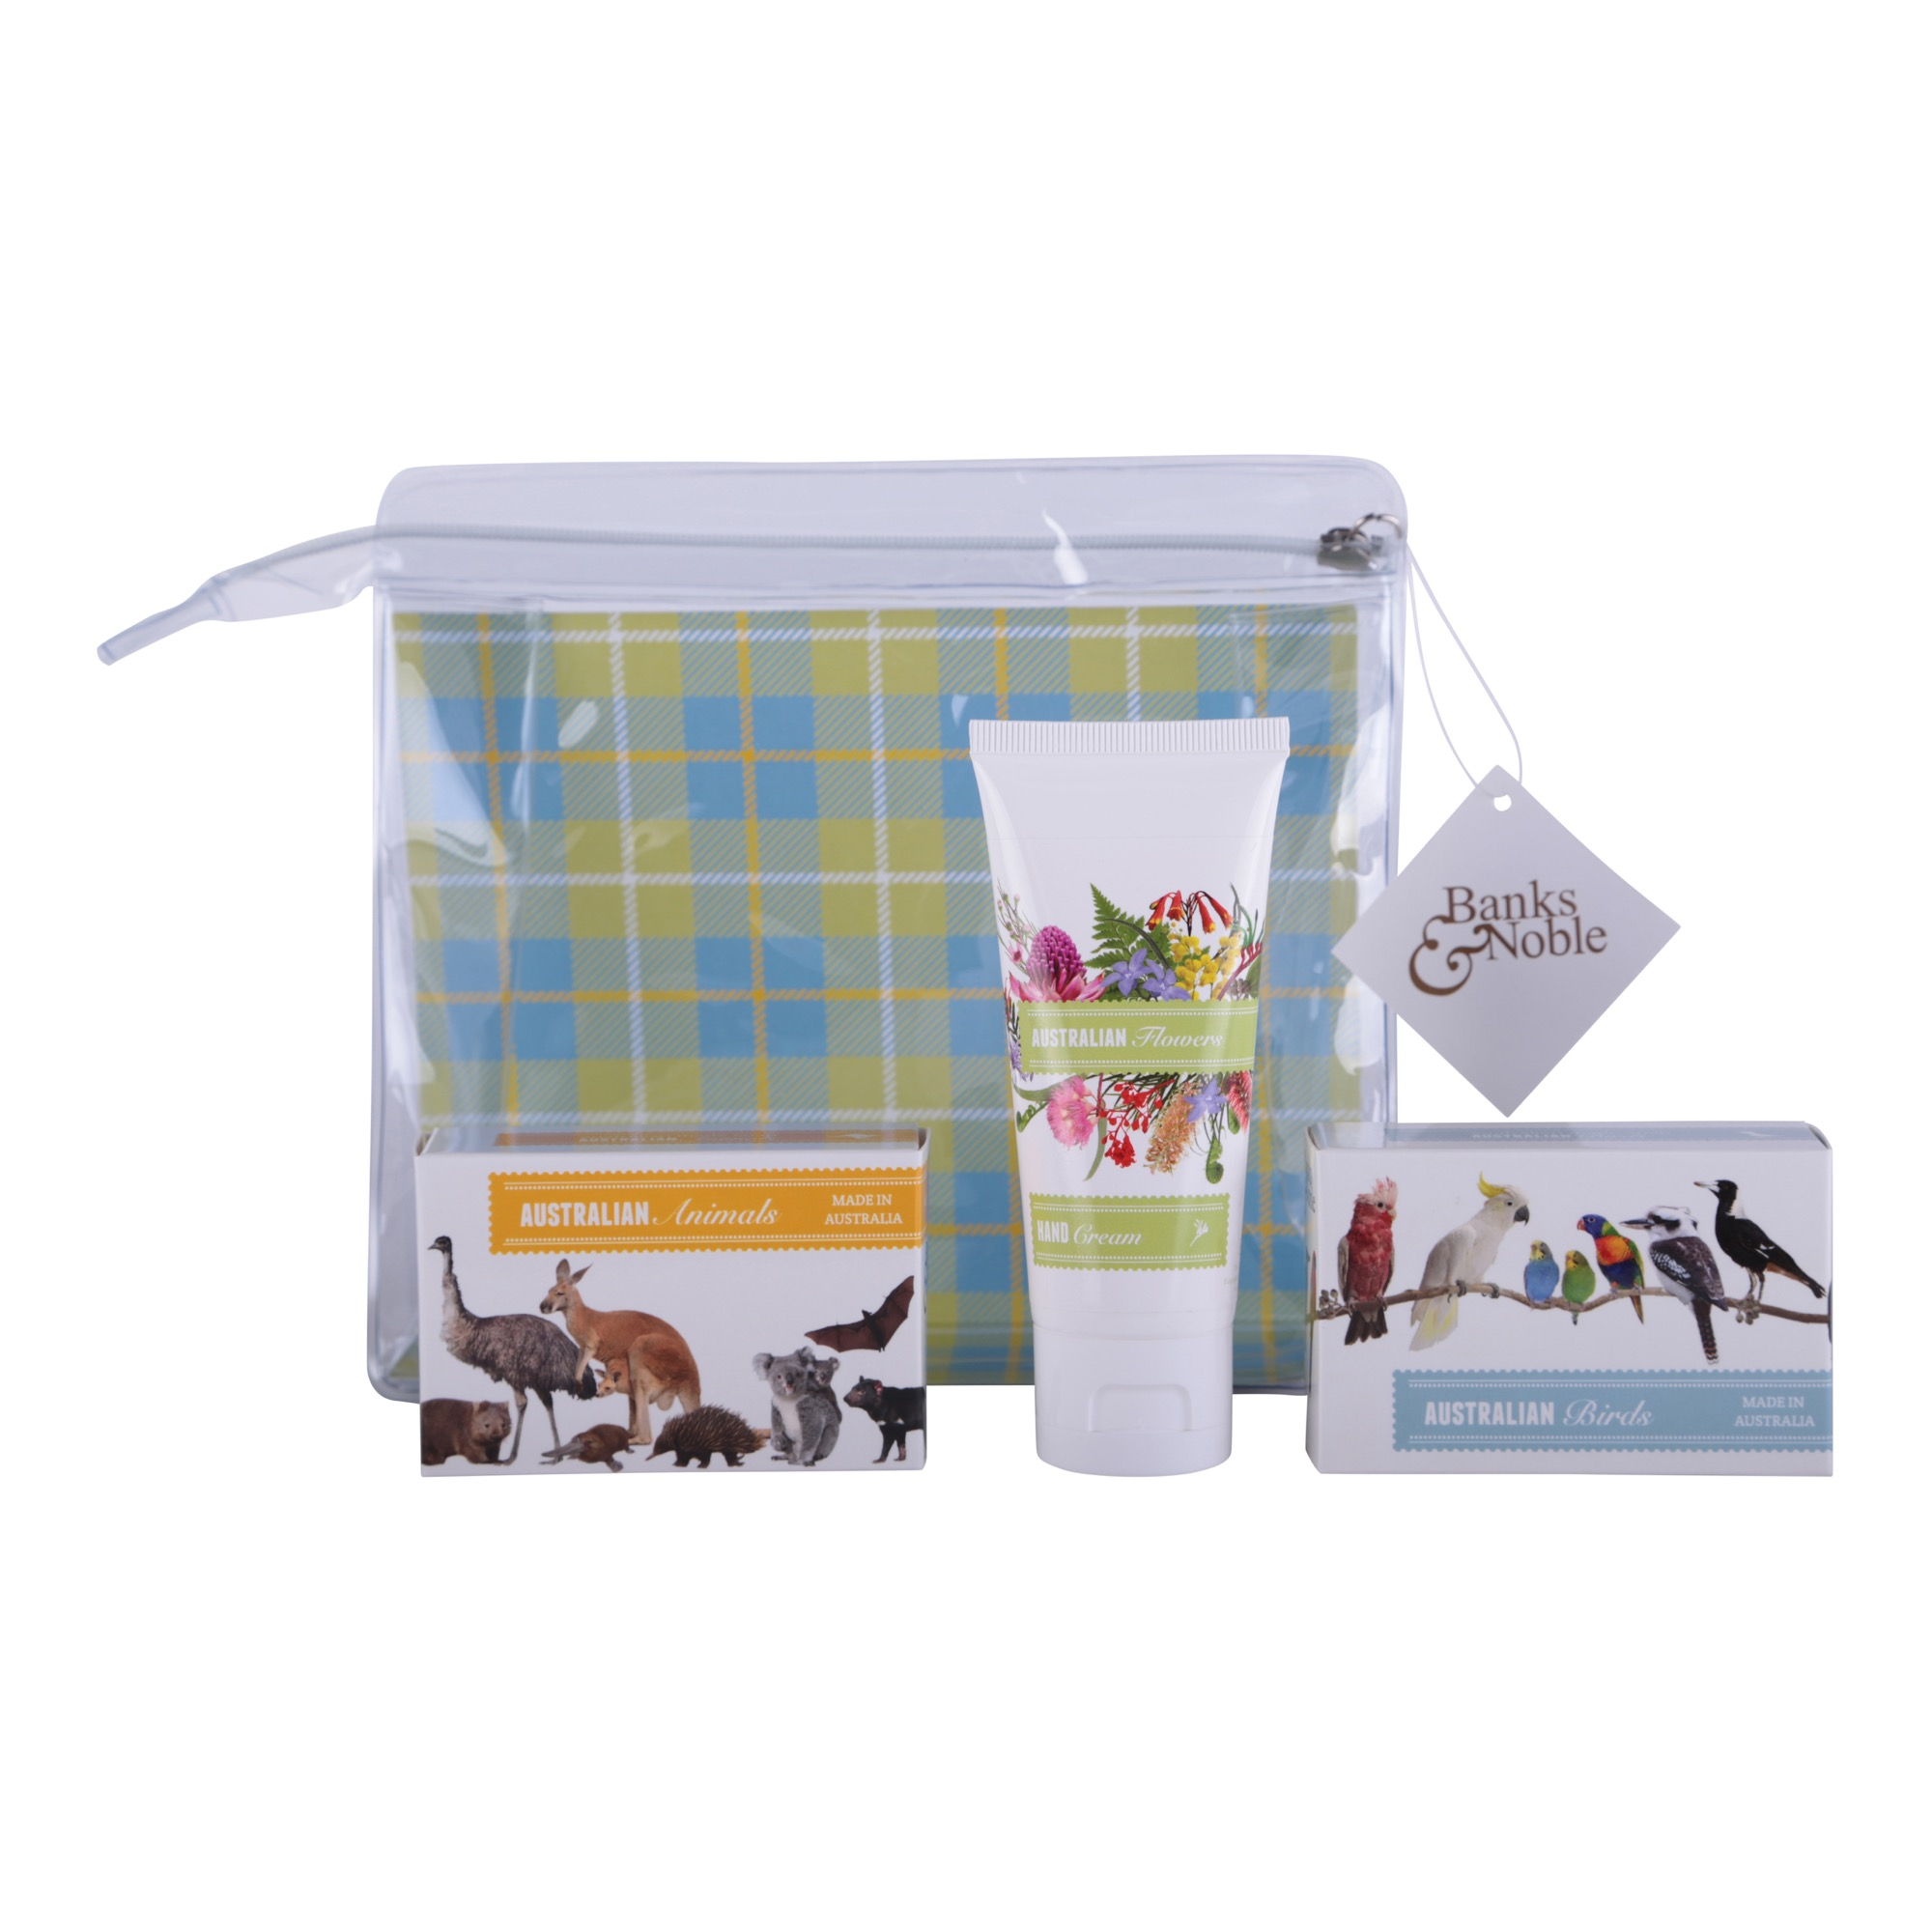 Australian Trio Animal, Bird & Flower Gift Pack - 2 Soaps, 1 Hand Cream